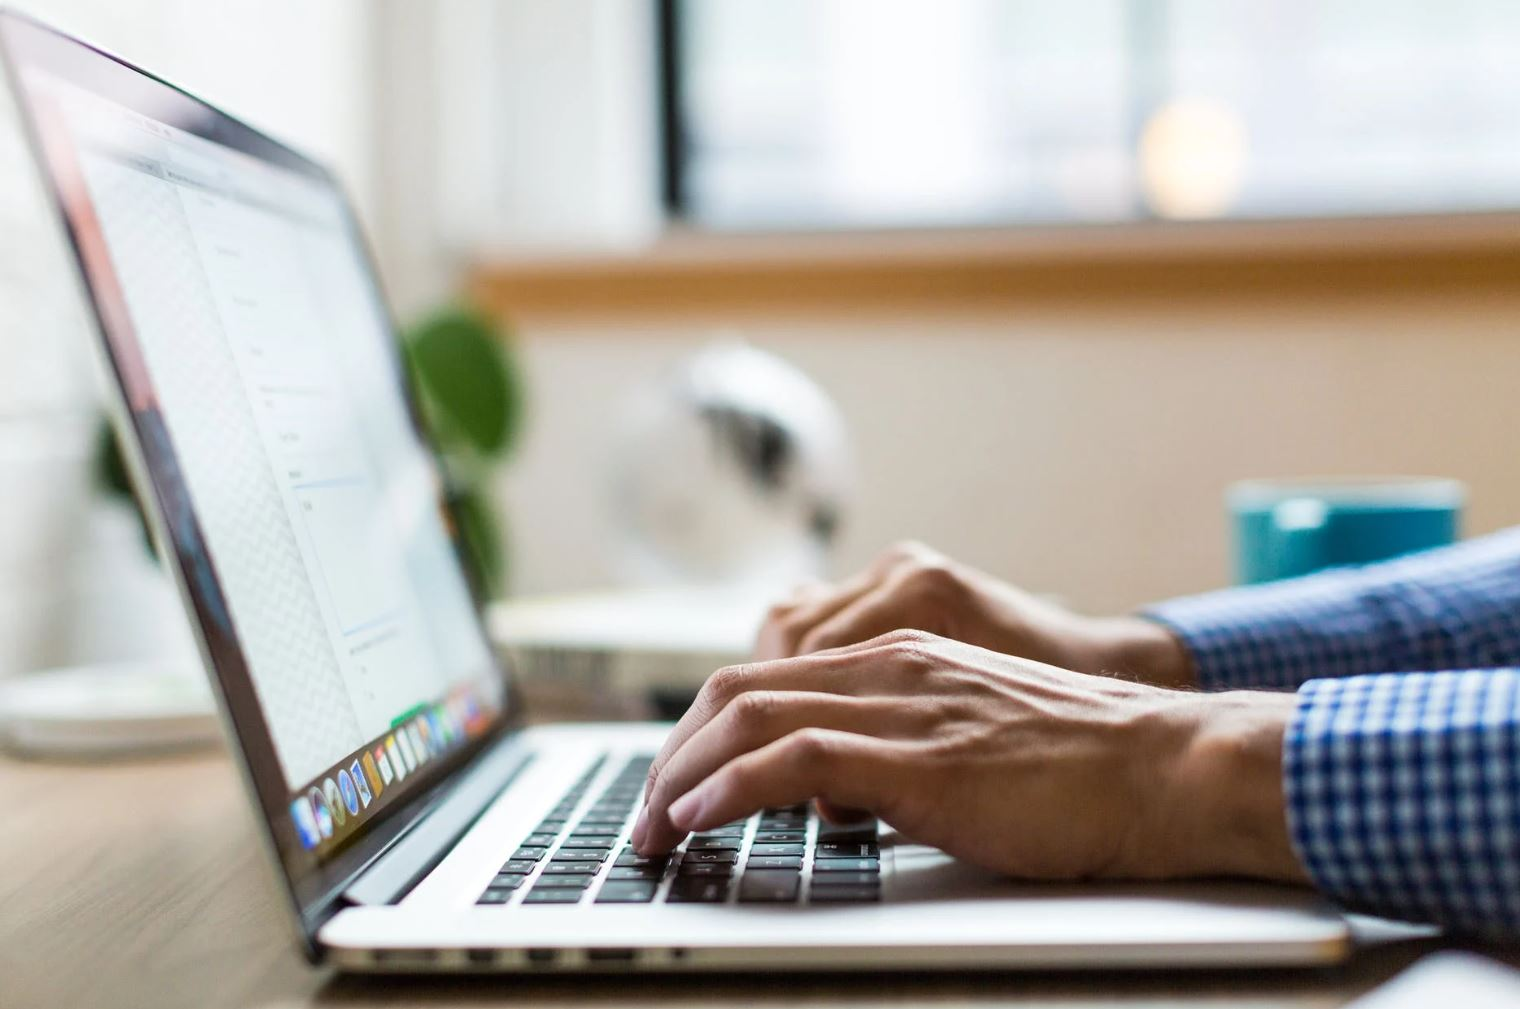 Image of a man using a laptop.